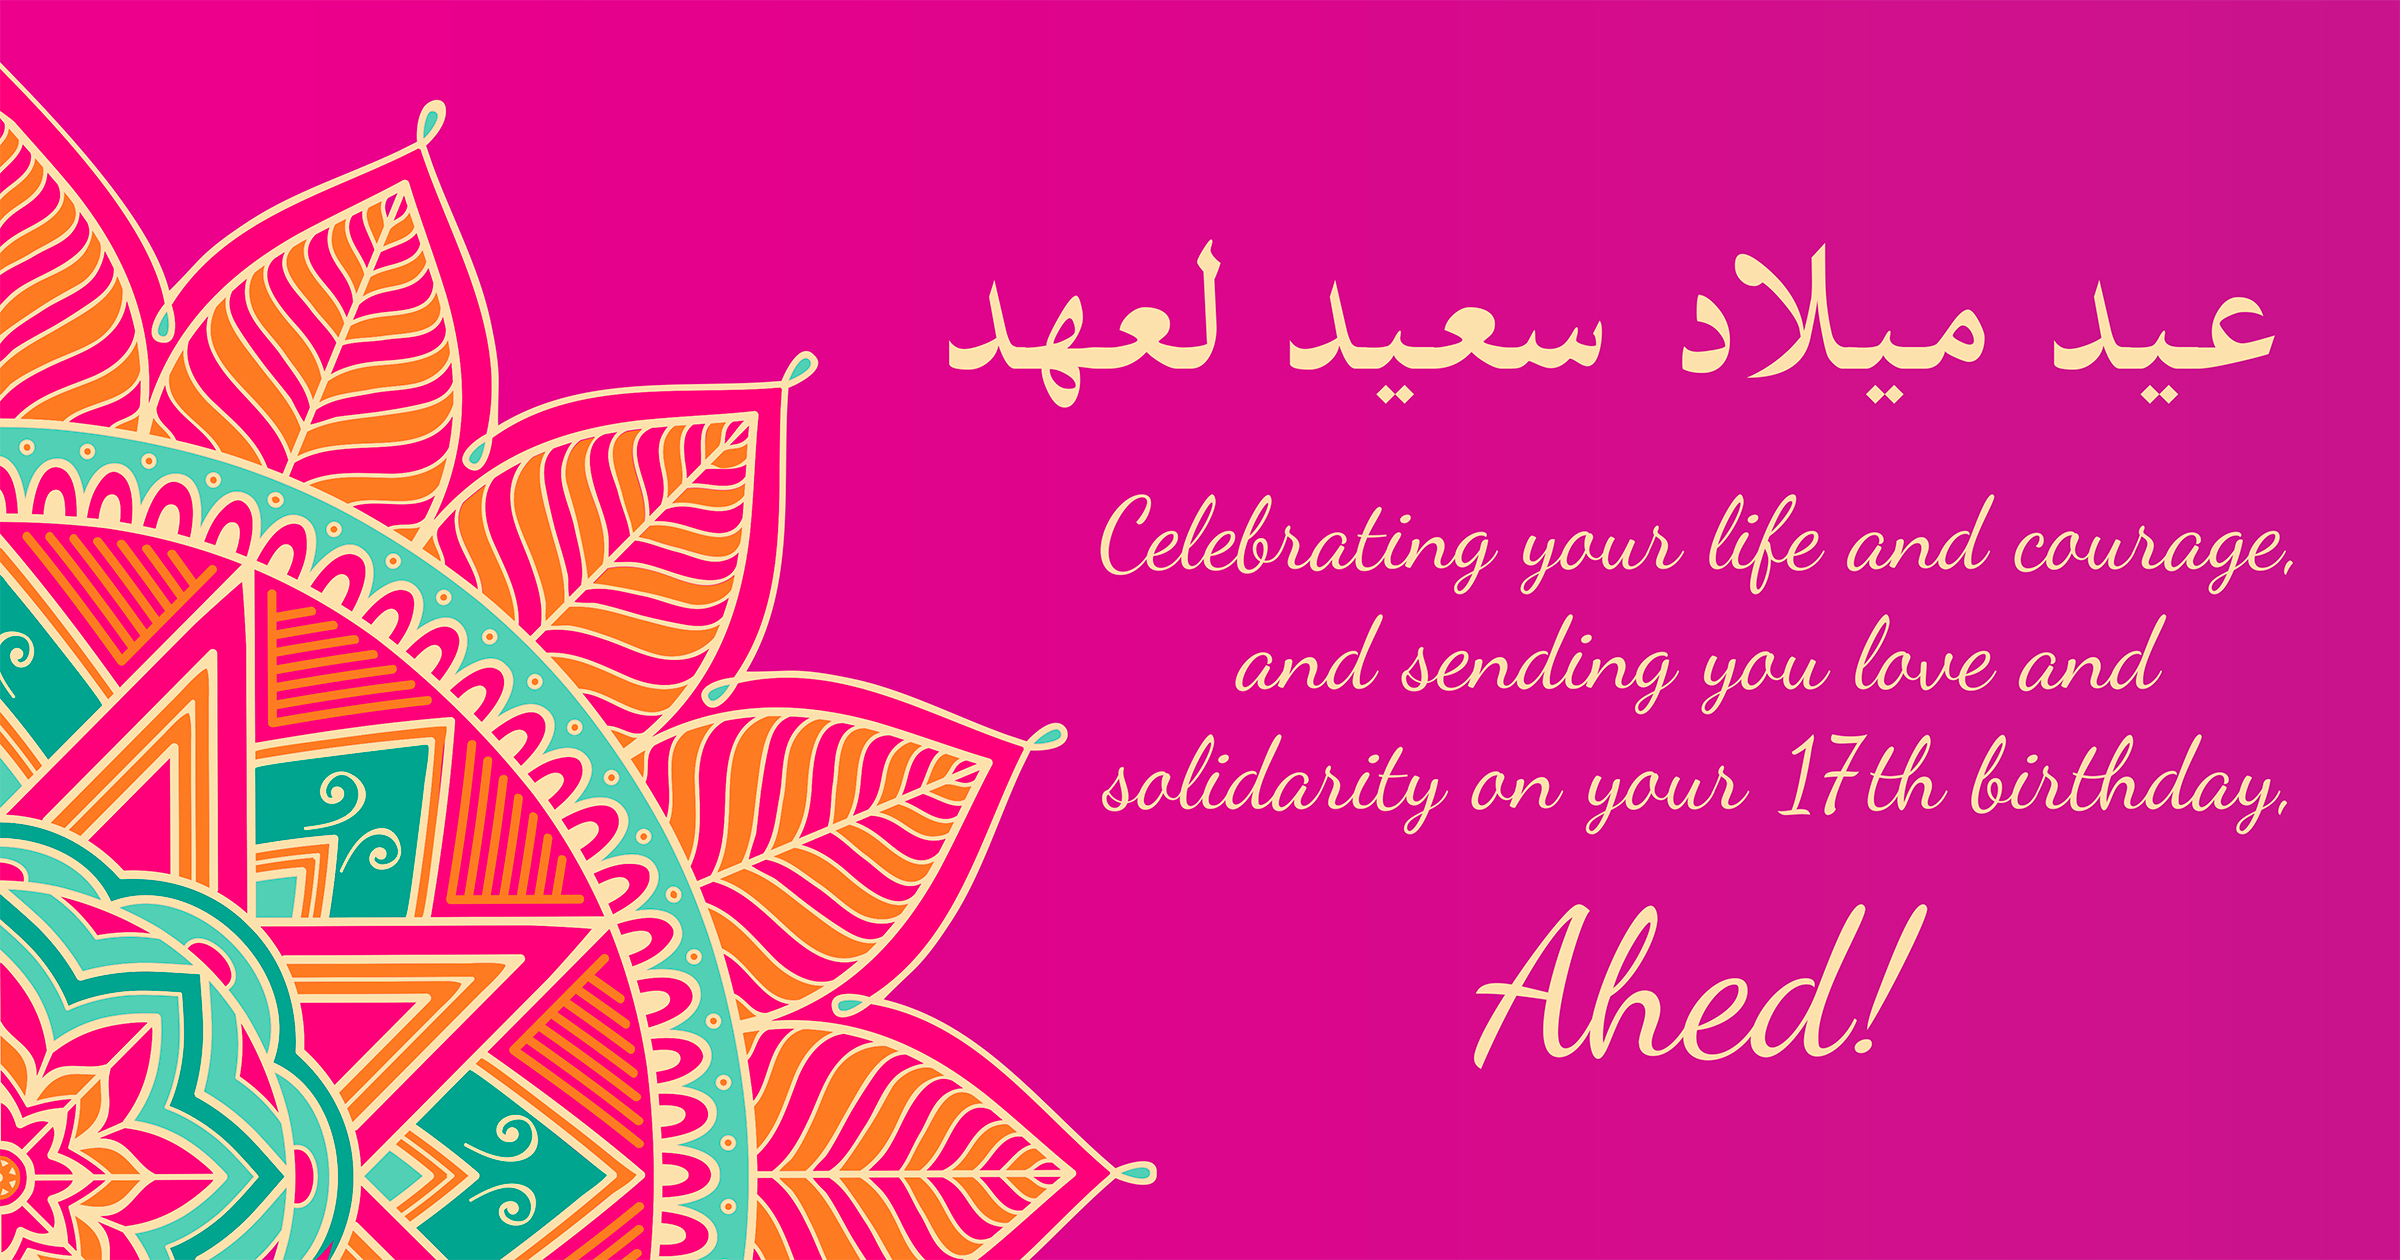 Send Ahed Tamimi Love And Solidarity On Her Birthday